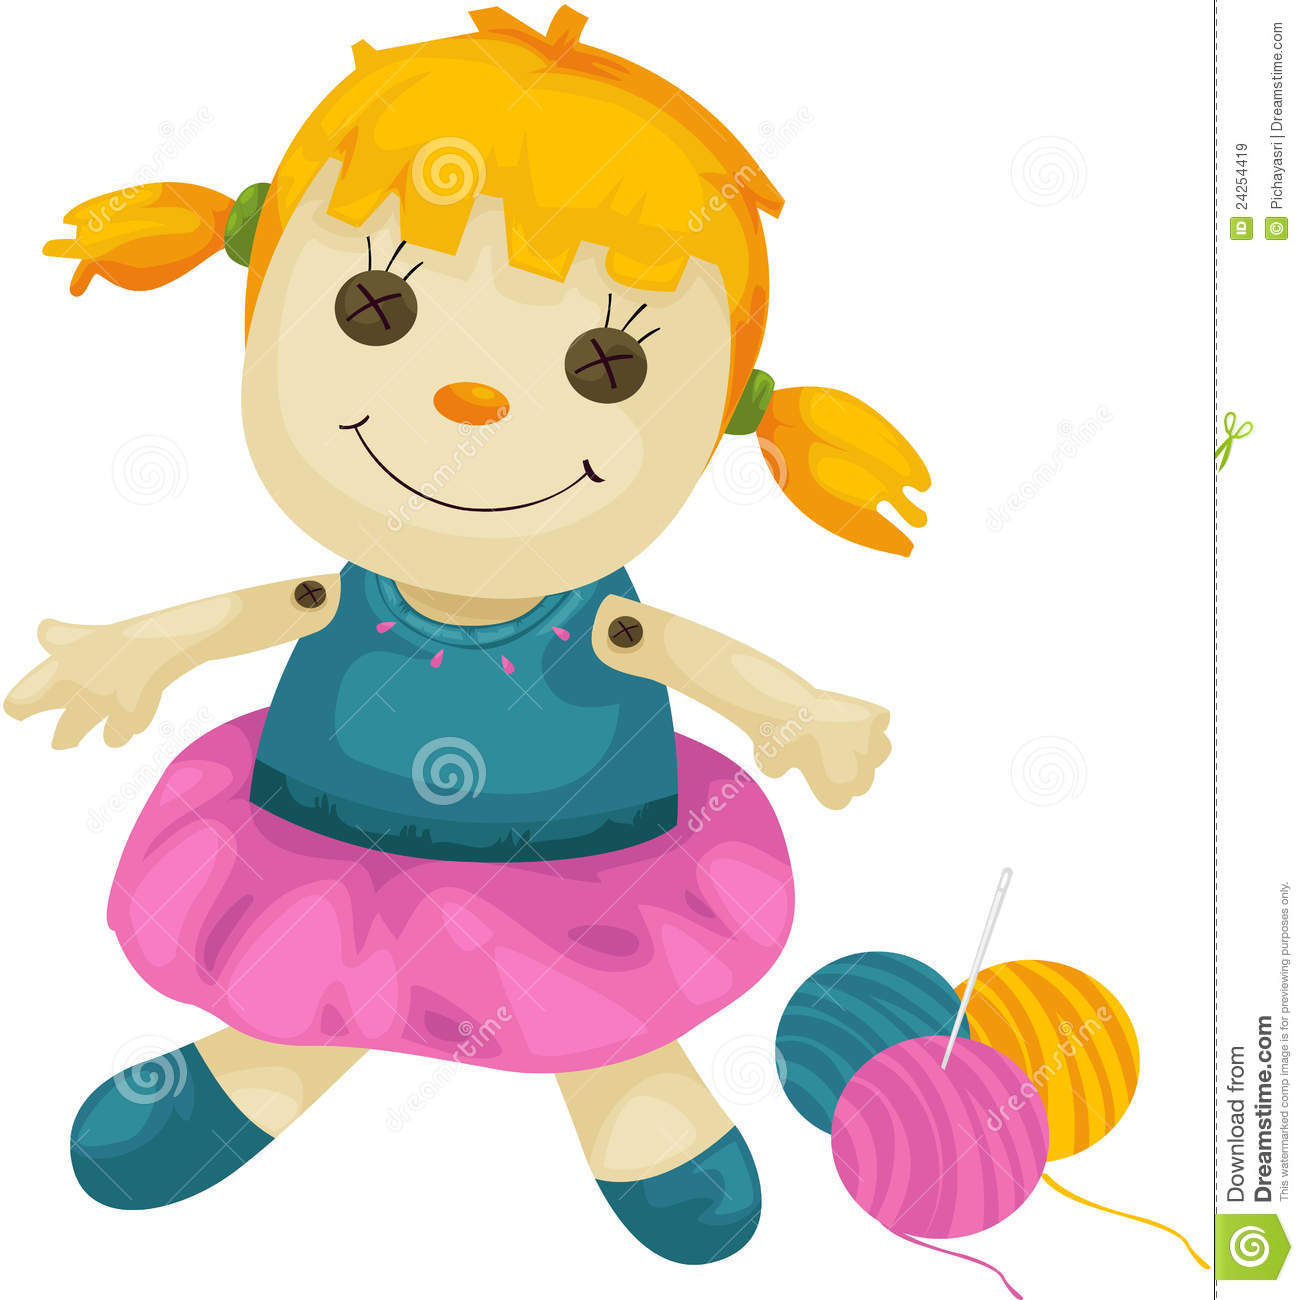 Baby Doll Clipart Fabric Doll With Yarns-Baby Doll Clipart Fabric Doll With Yarns-14